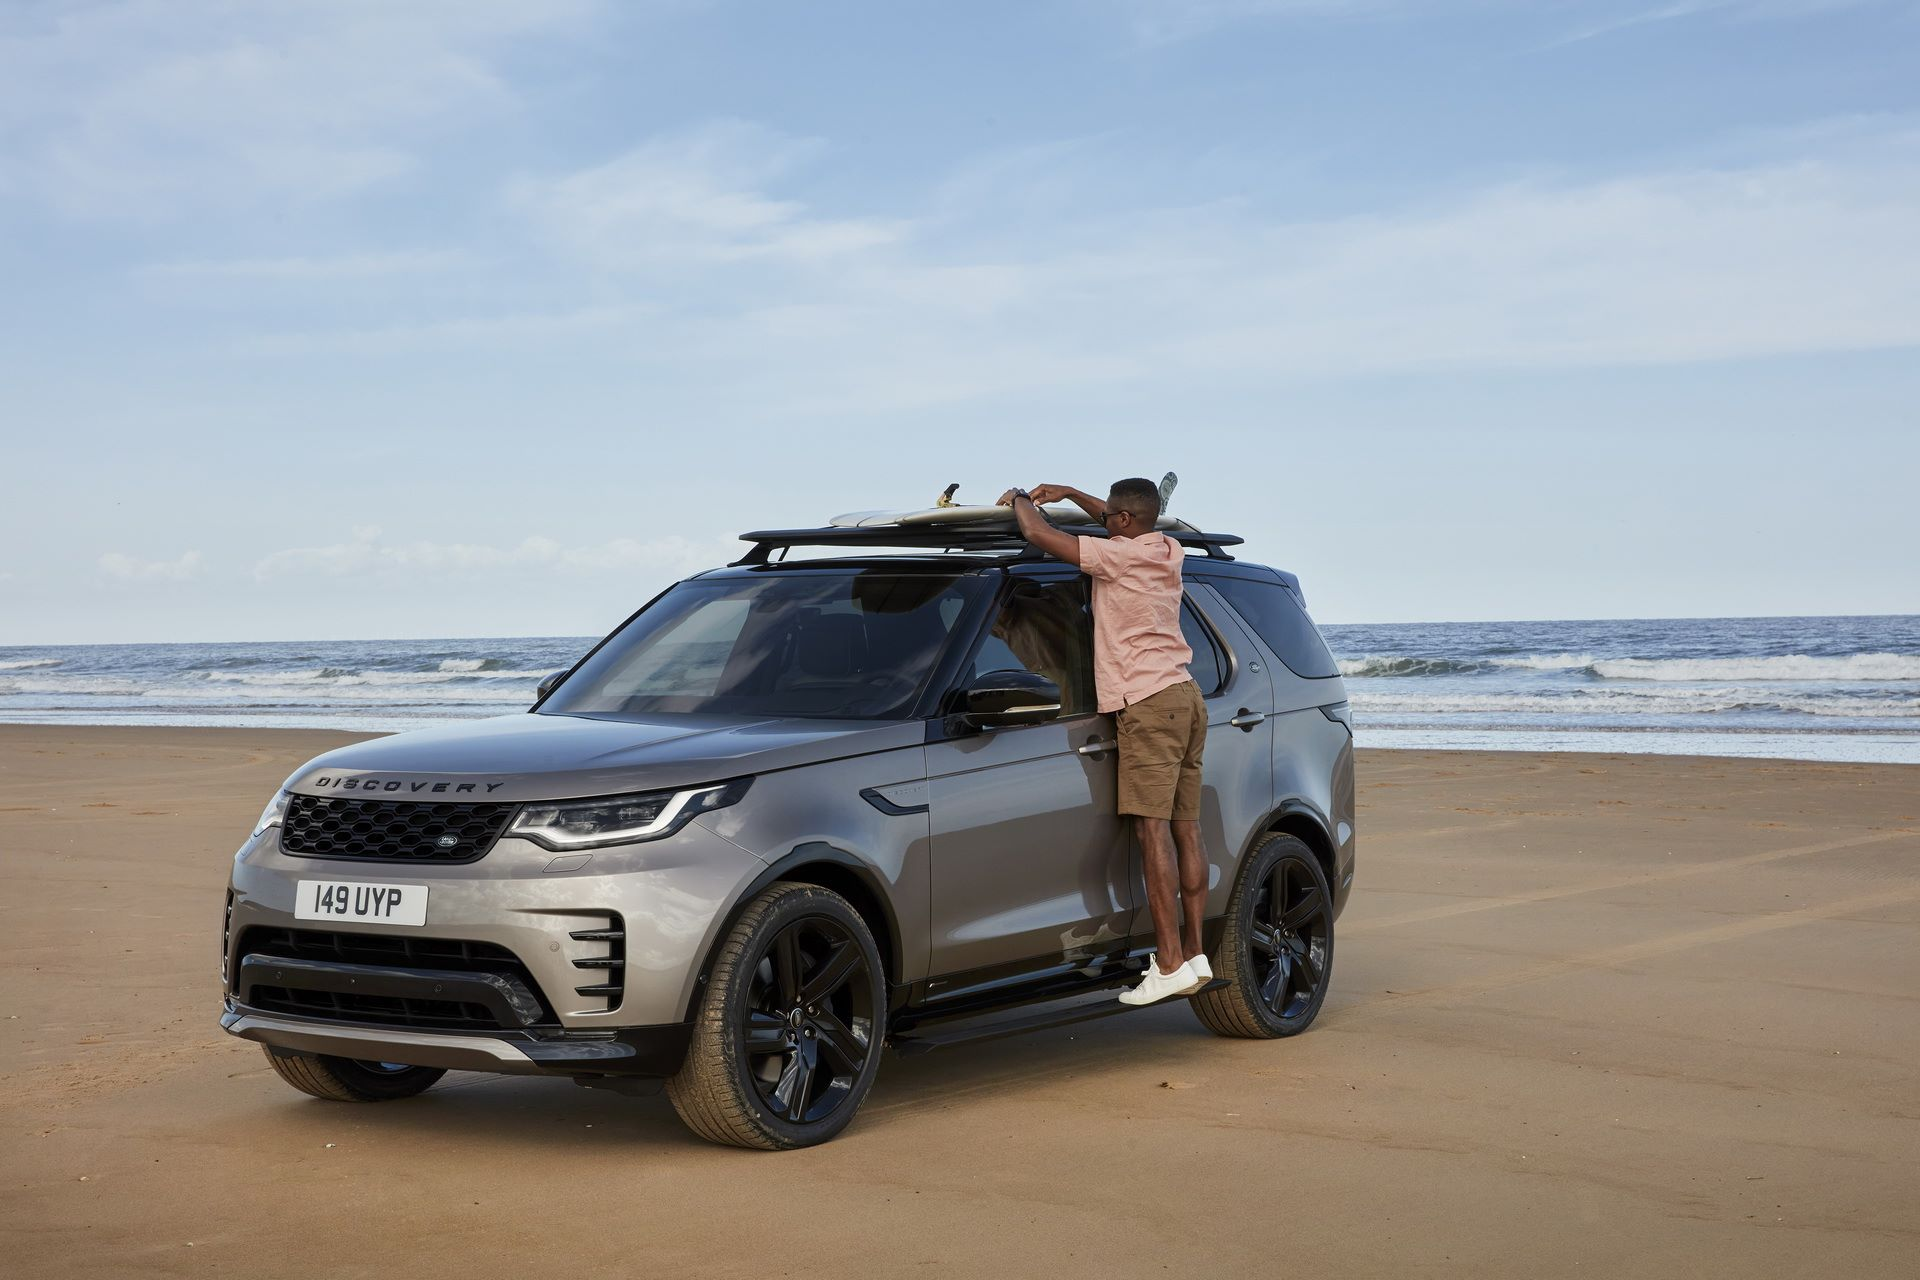 2021-Land-Rover-Discovery-79